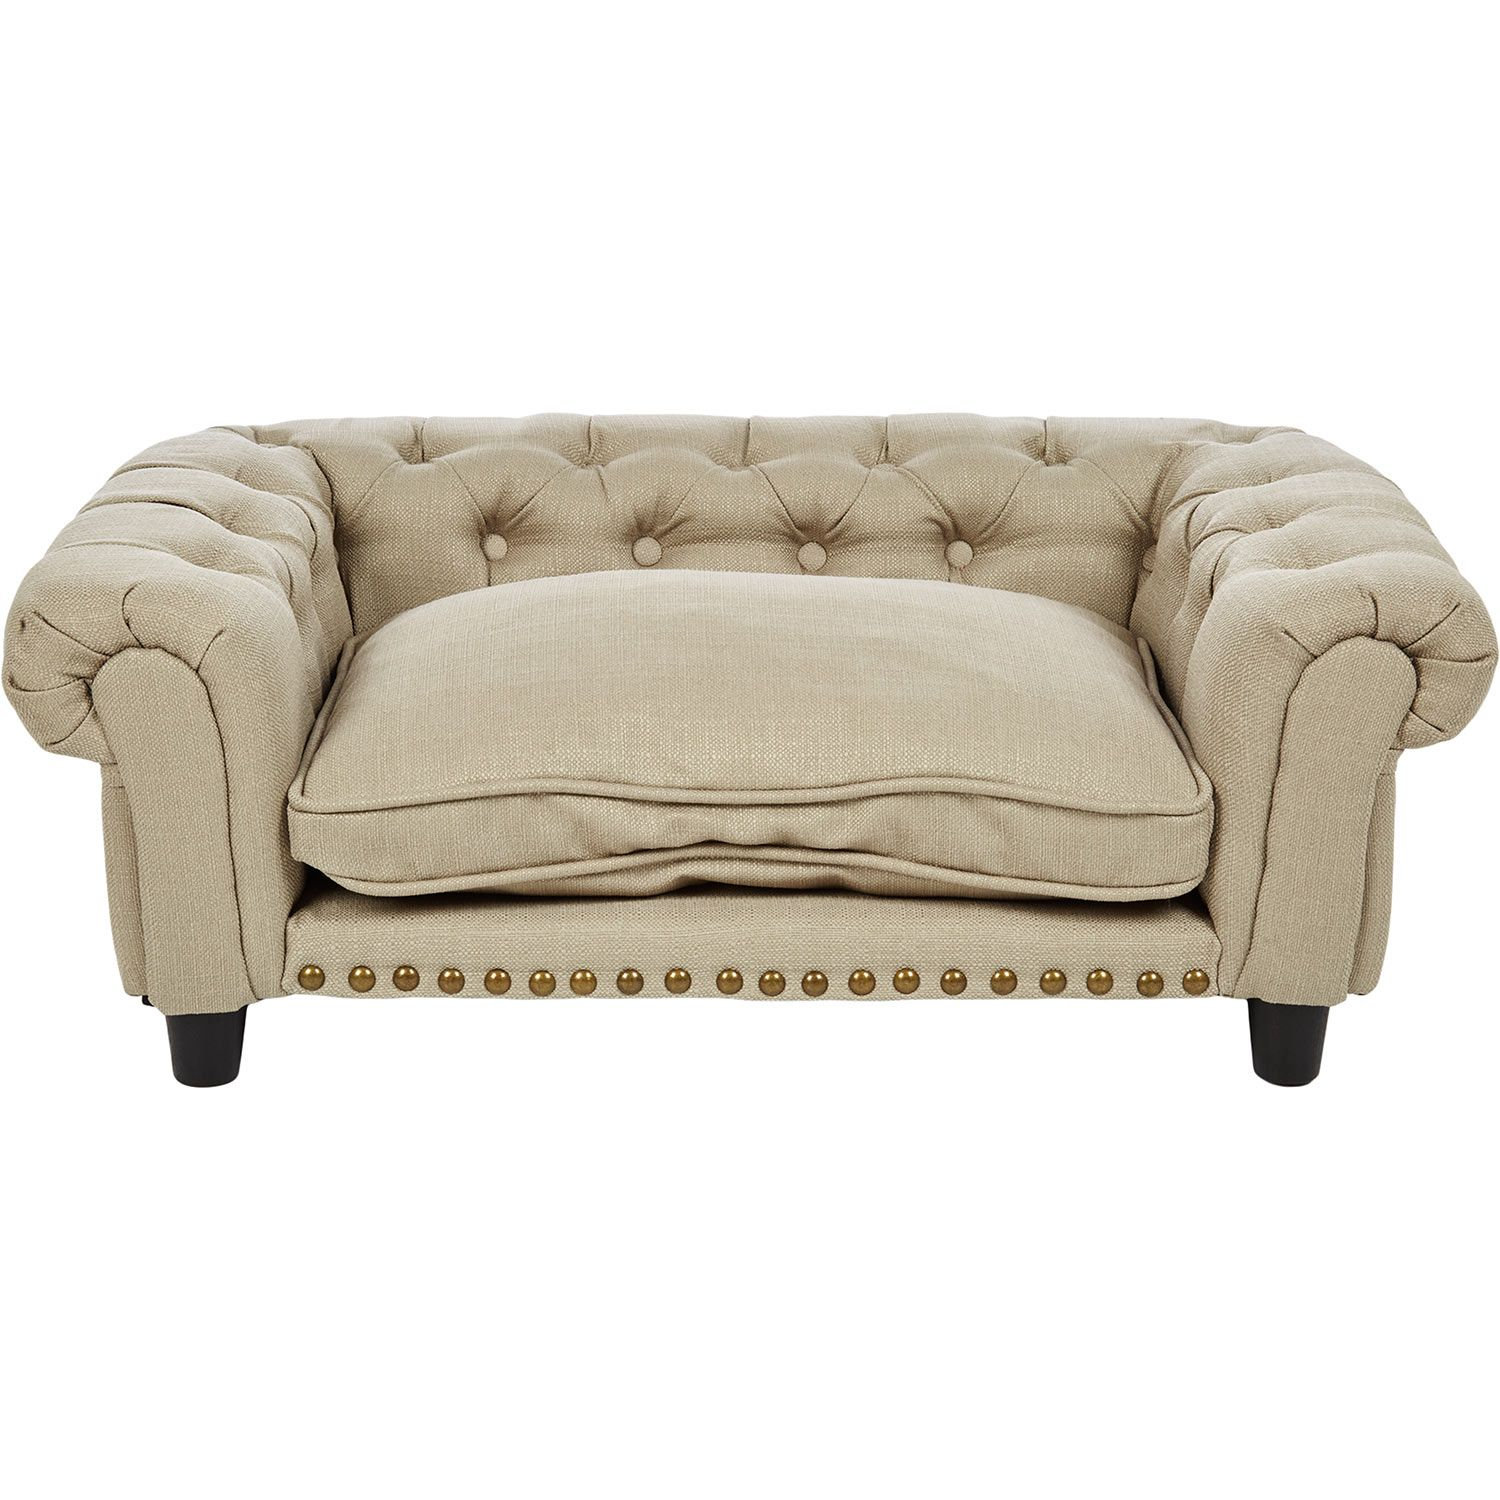 "Enchanted Home Pet"" Linen Tufted Sofa TK Maxx"